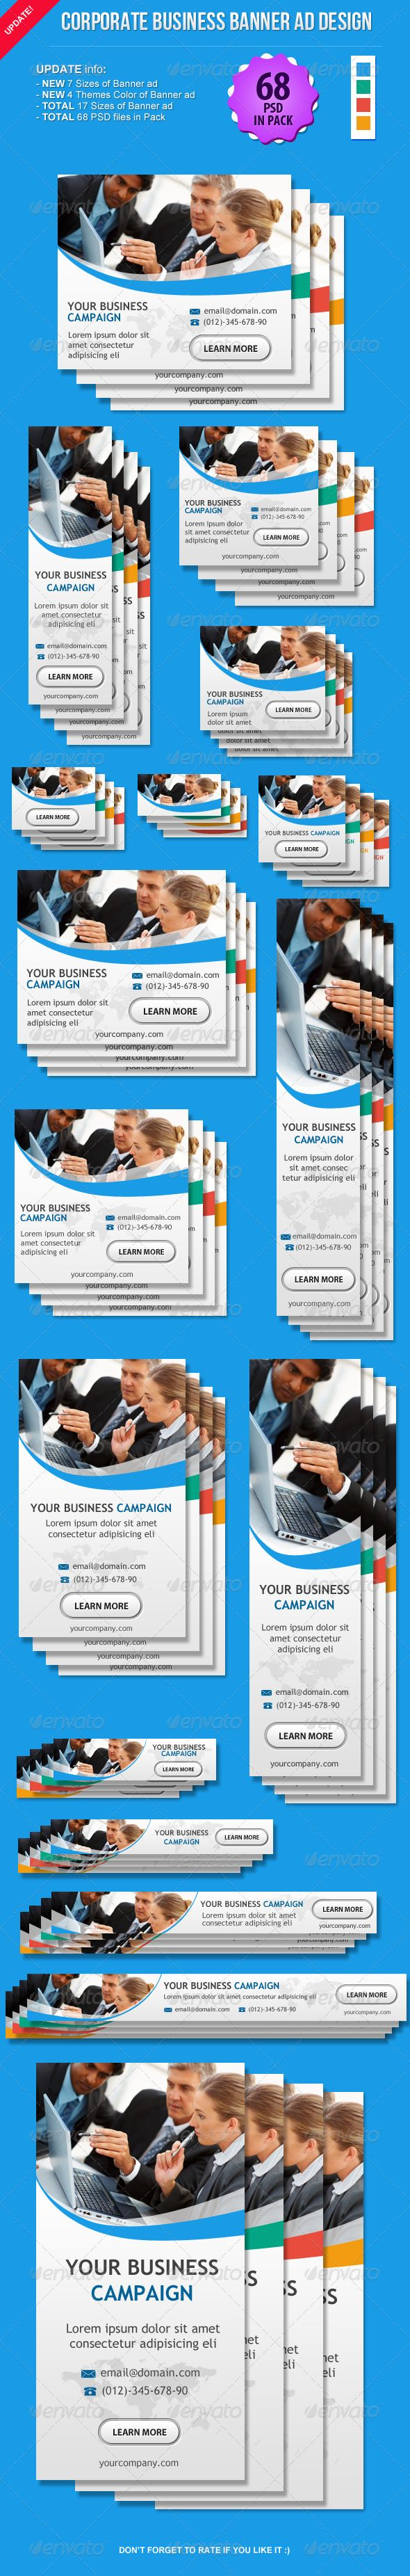 Corporate Business Banner Ad Design Template PSD | Buy and Download: http://graphicriver.net/item/corporate-business-banner-ad-design/5104569?WT.ac=category_thumb&WT.z_author=booharry&ref=ksioks